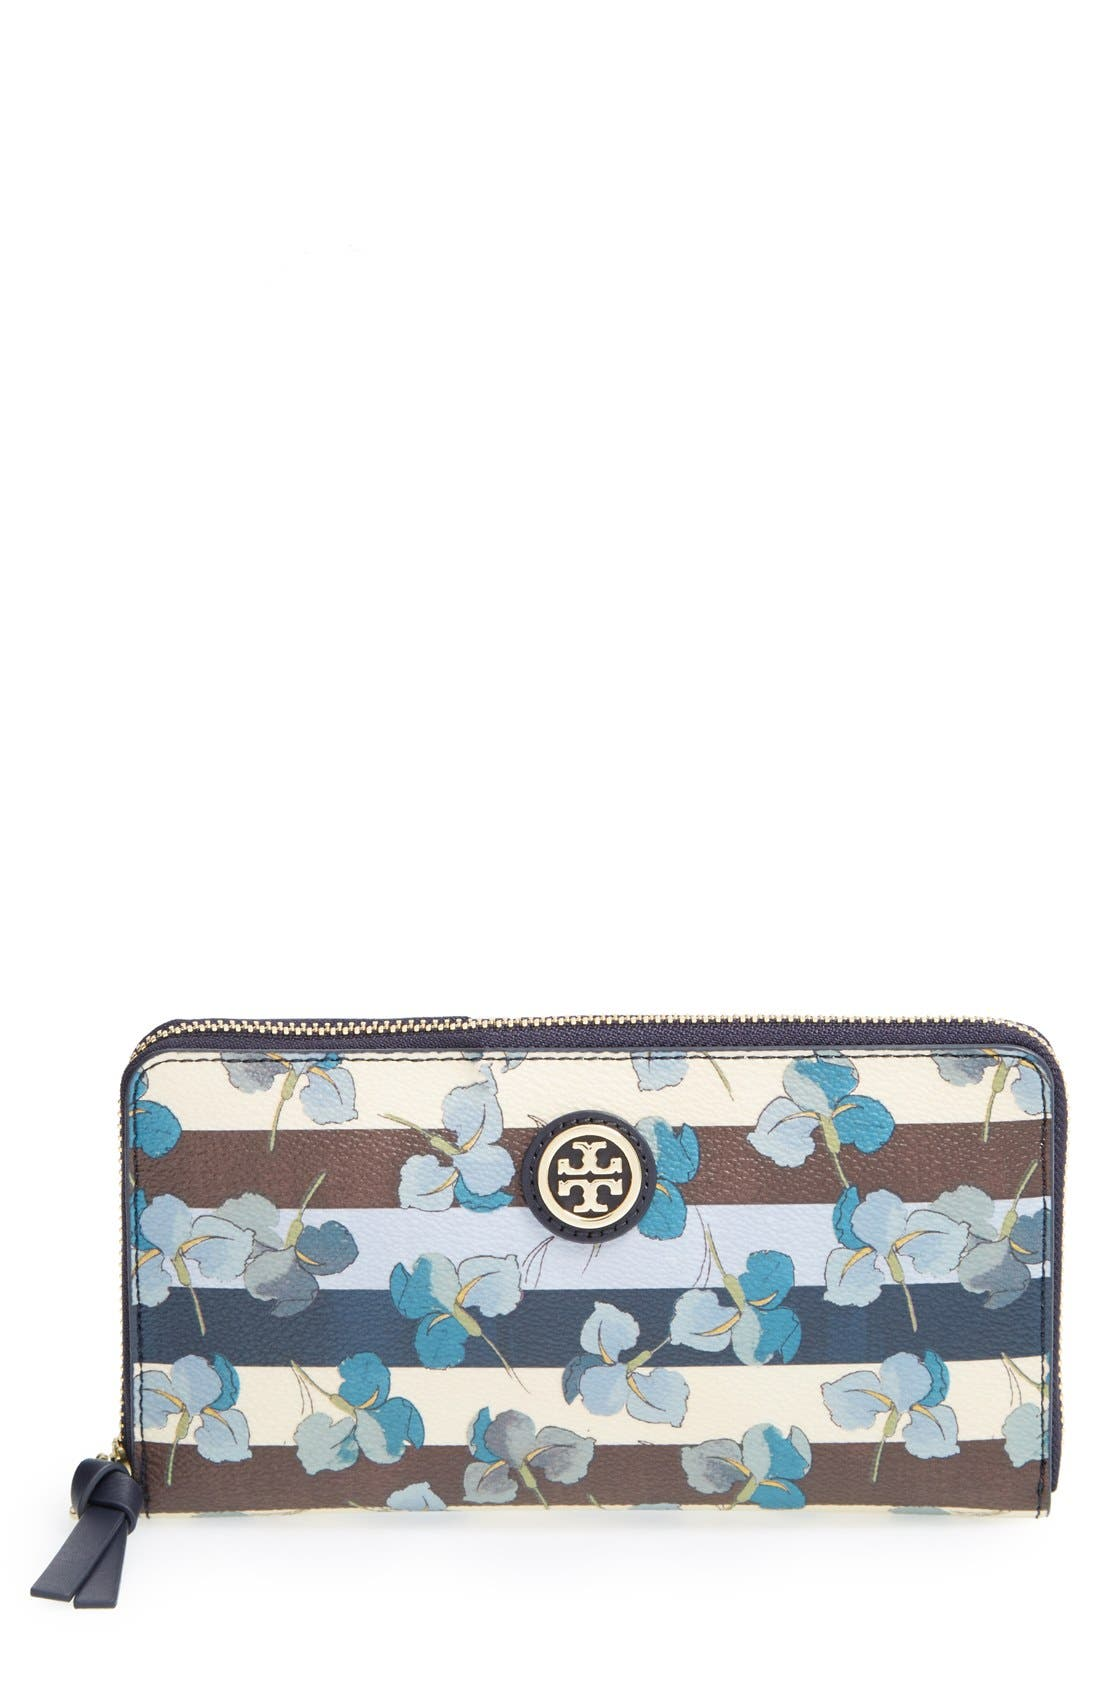 Alternate Image 1 Selected - Tory Burch 'Kerrington' Zip Continental Wallet